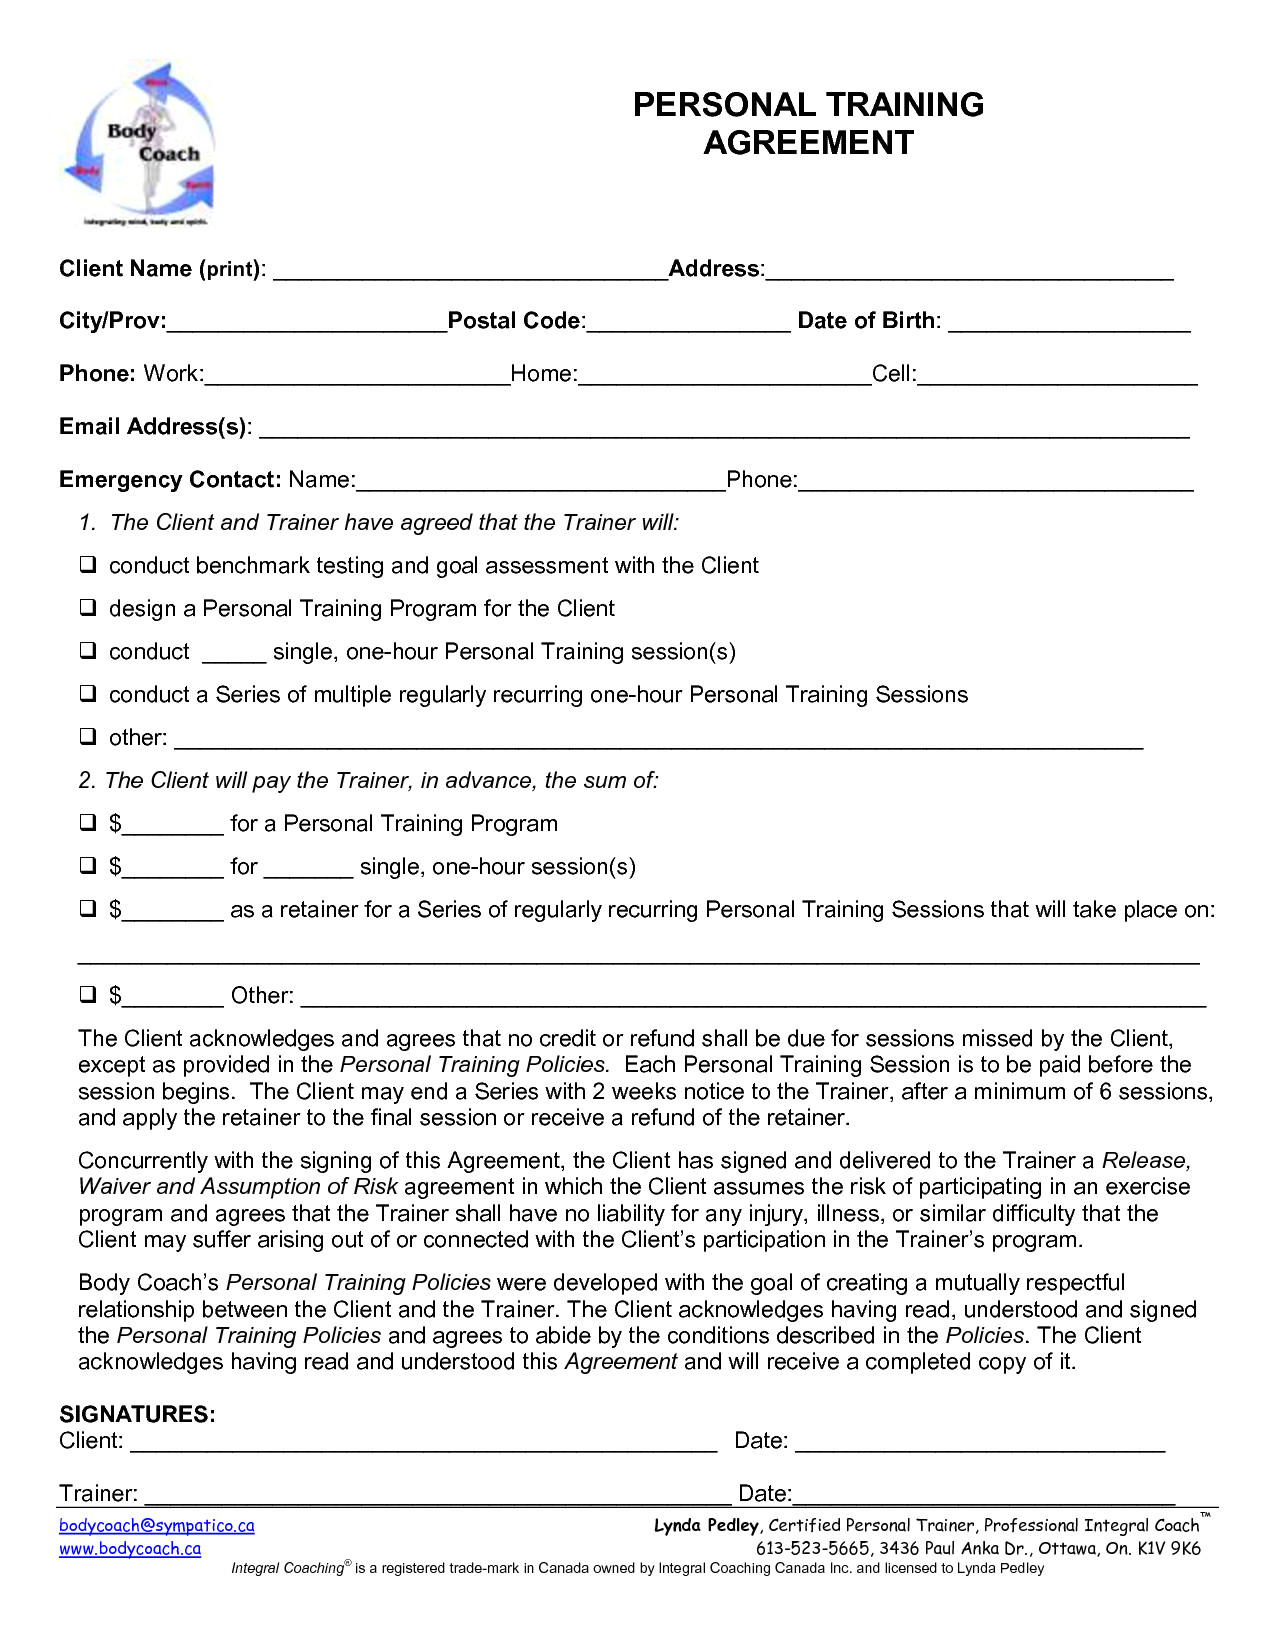 Personal Trainer Contract with Gym Template Personal Training forms Images Personal Training